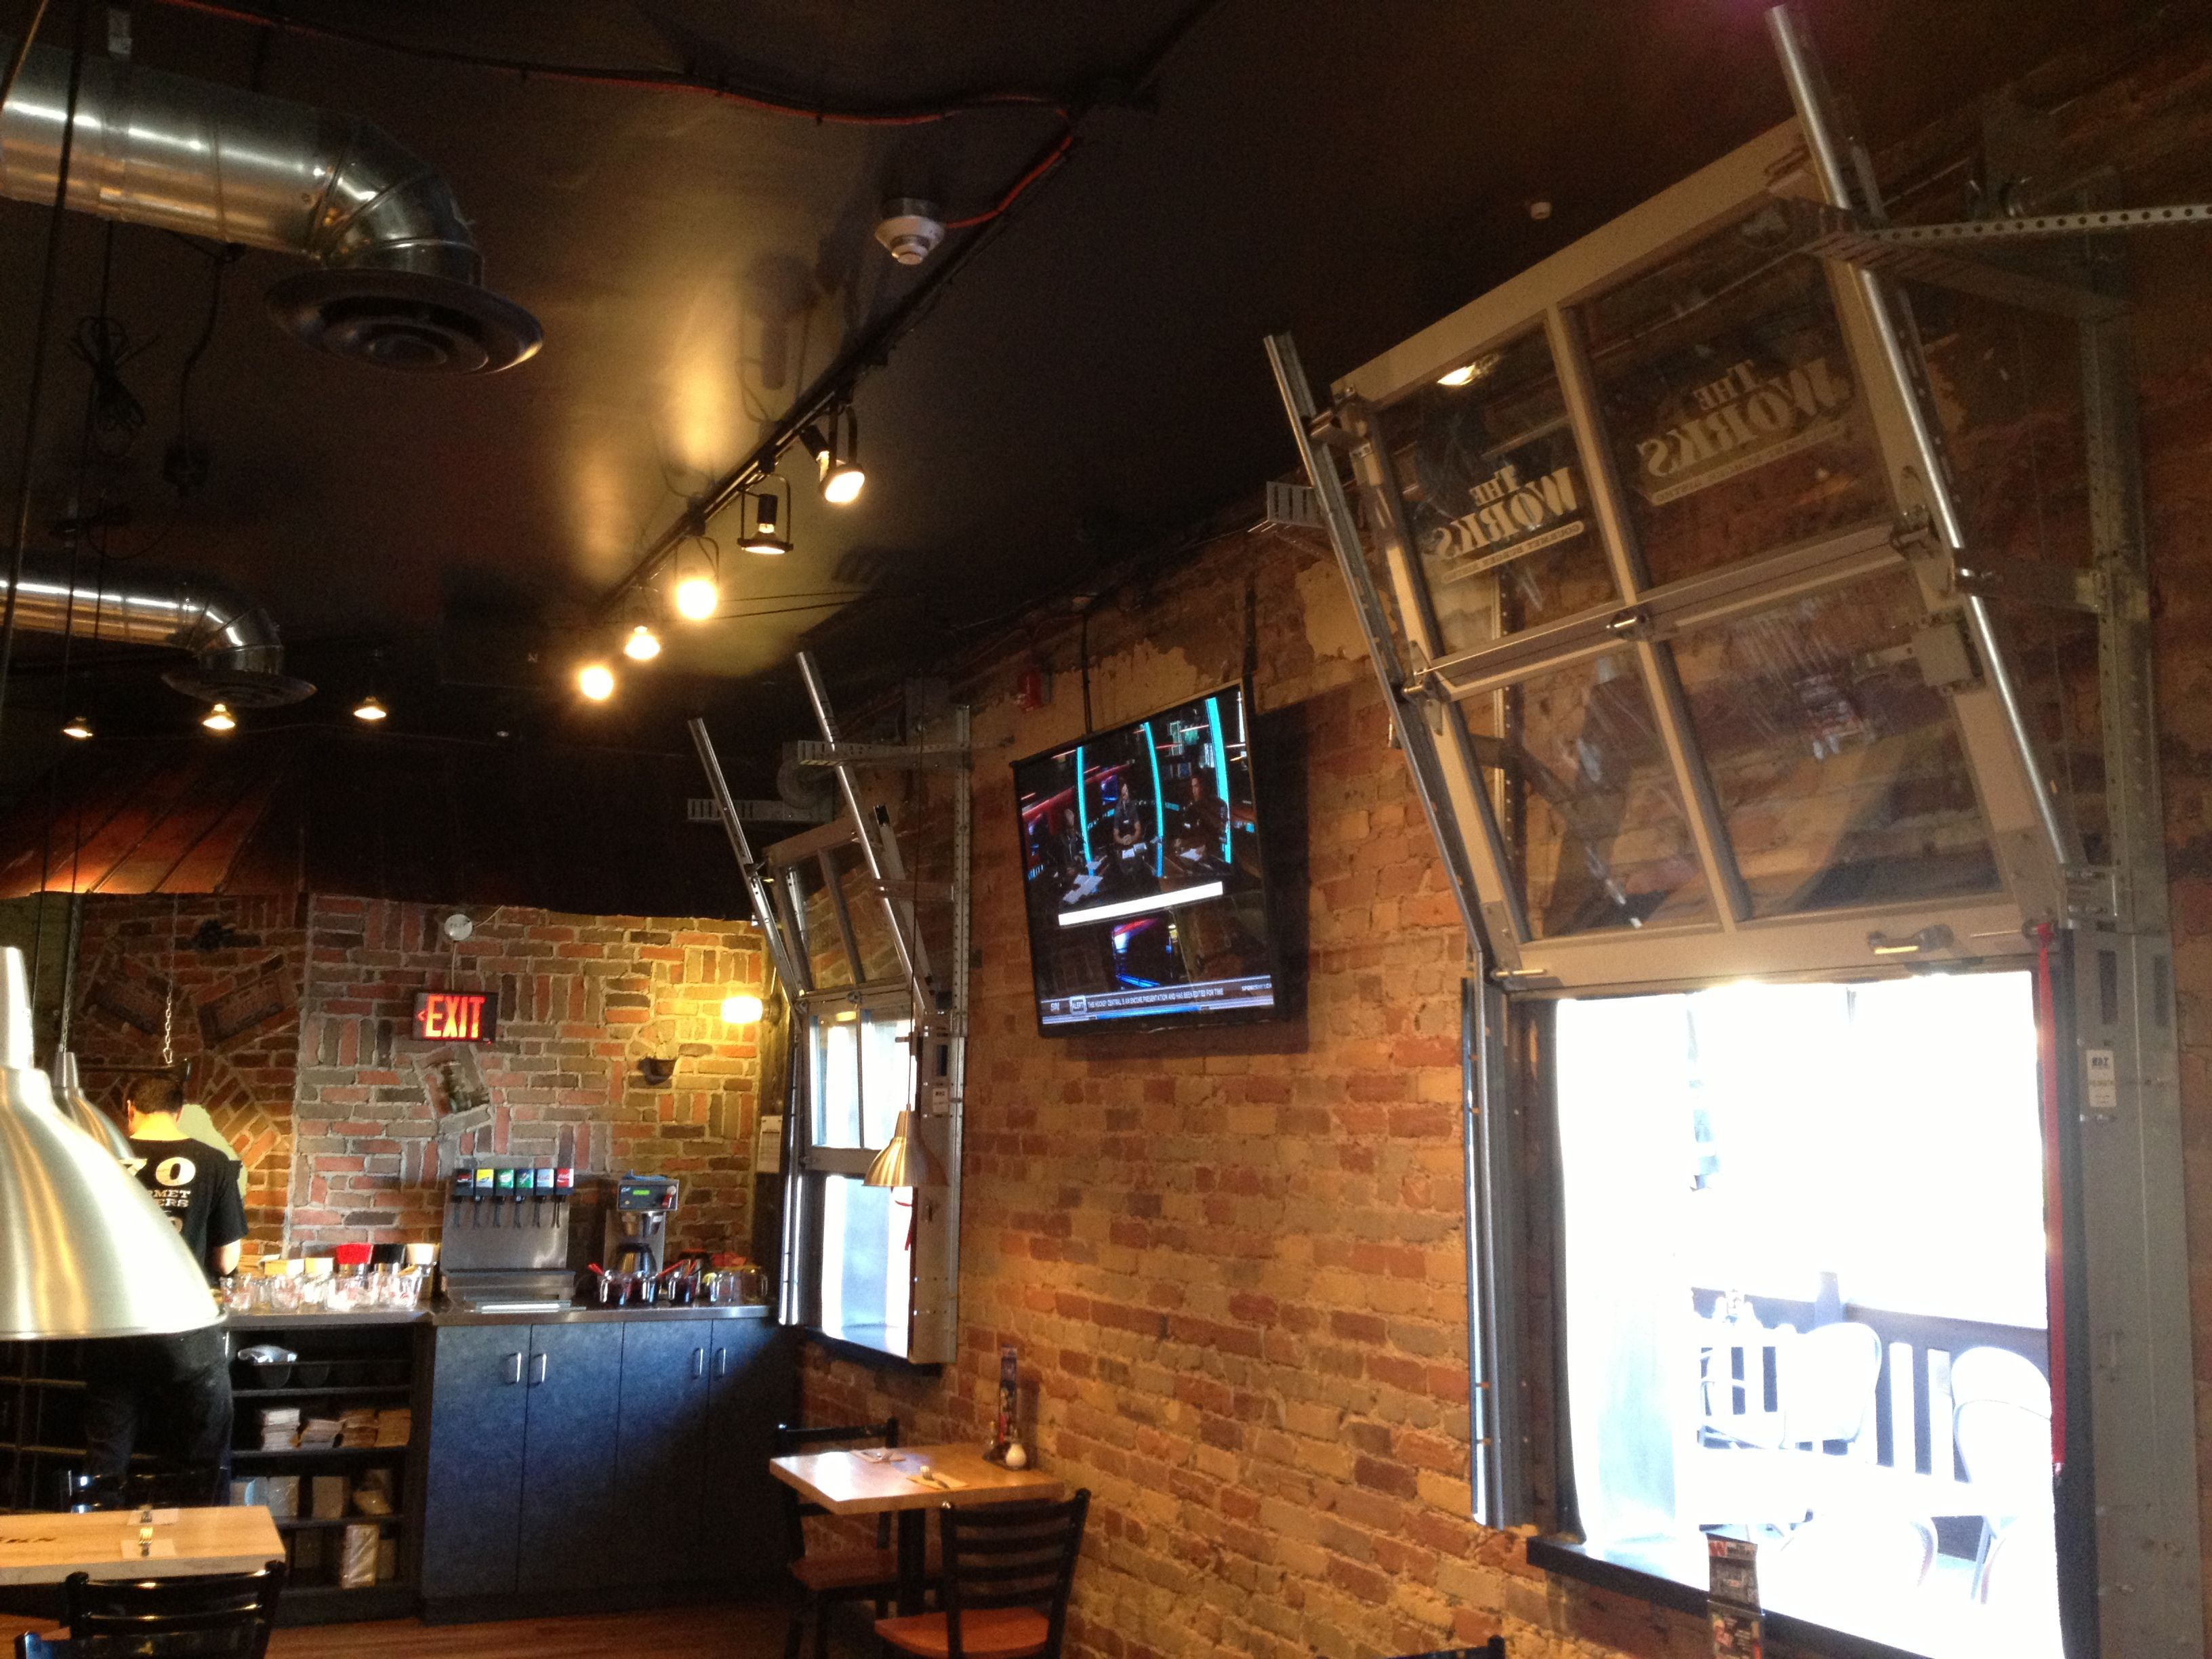 Tv Wall Mounted Against Exposed Brick Wall Tv Wall Mount Installation Tv Wall Wall Mounted Tv